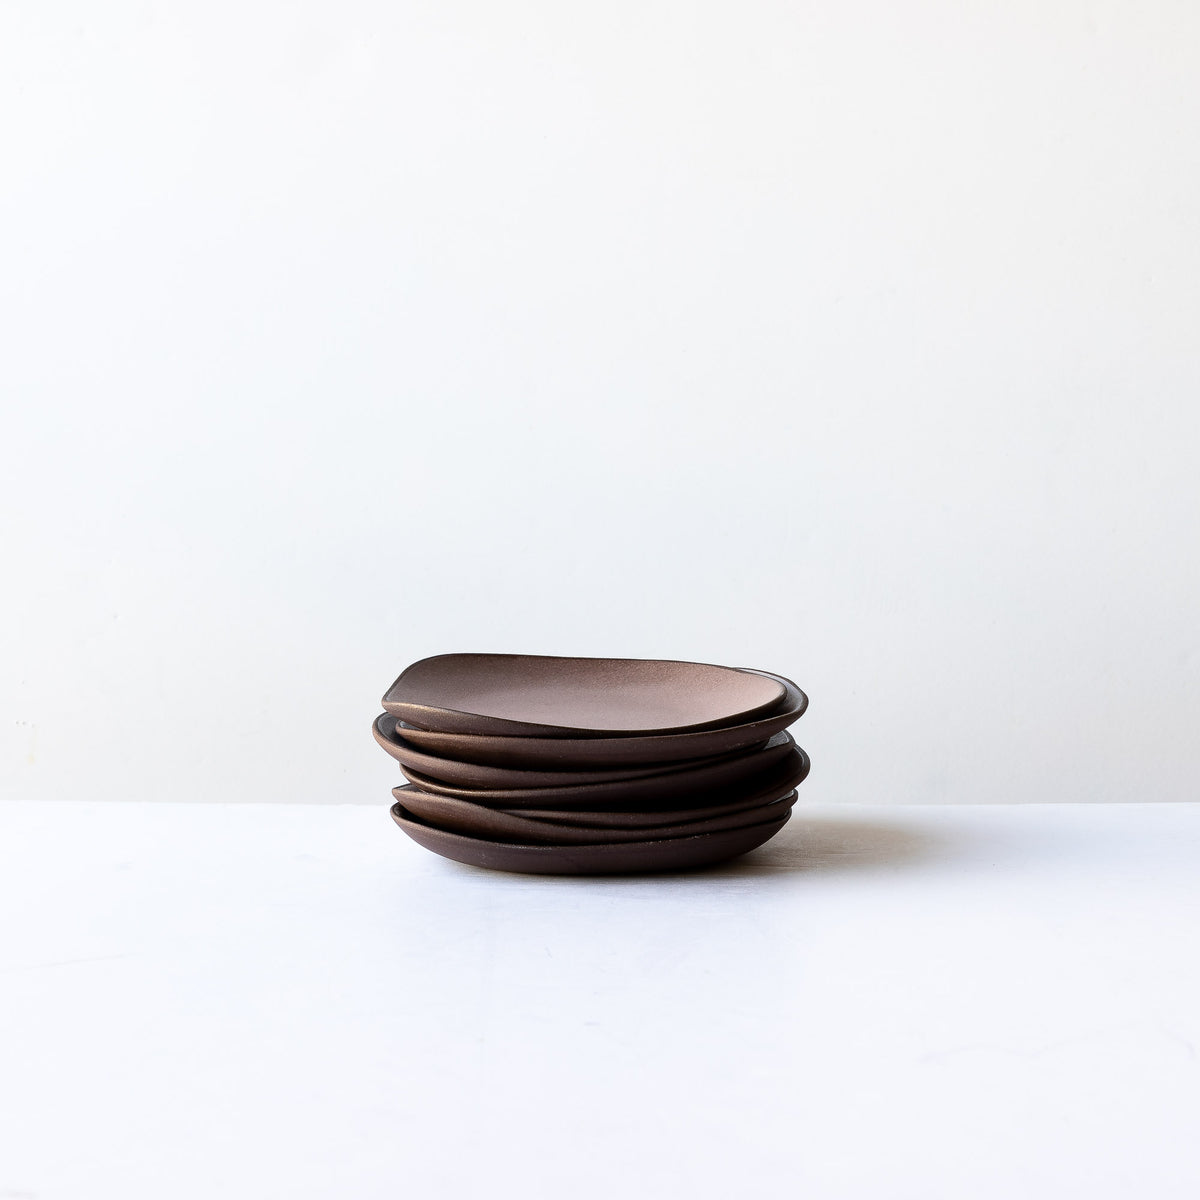 A Pile of Handcrafted Organic Shaped Small Stoneware Plates - Sold by Chic & Basta